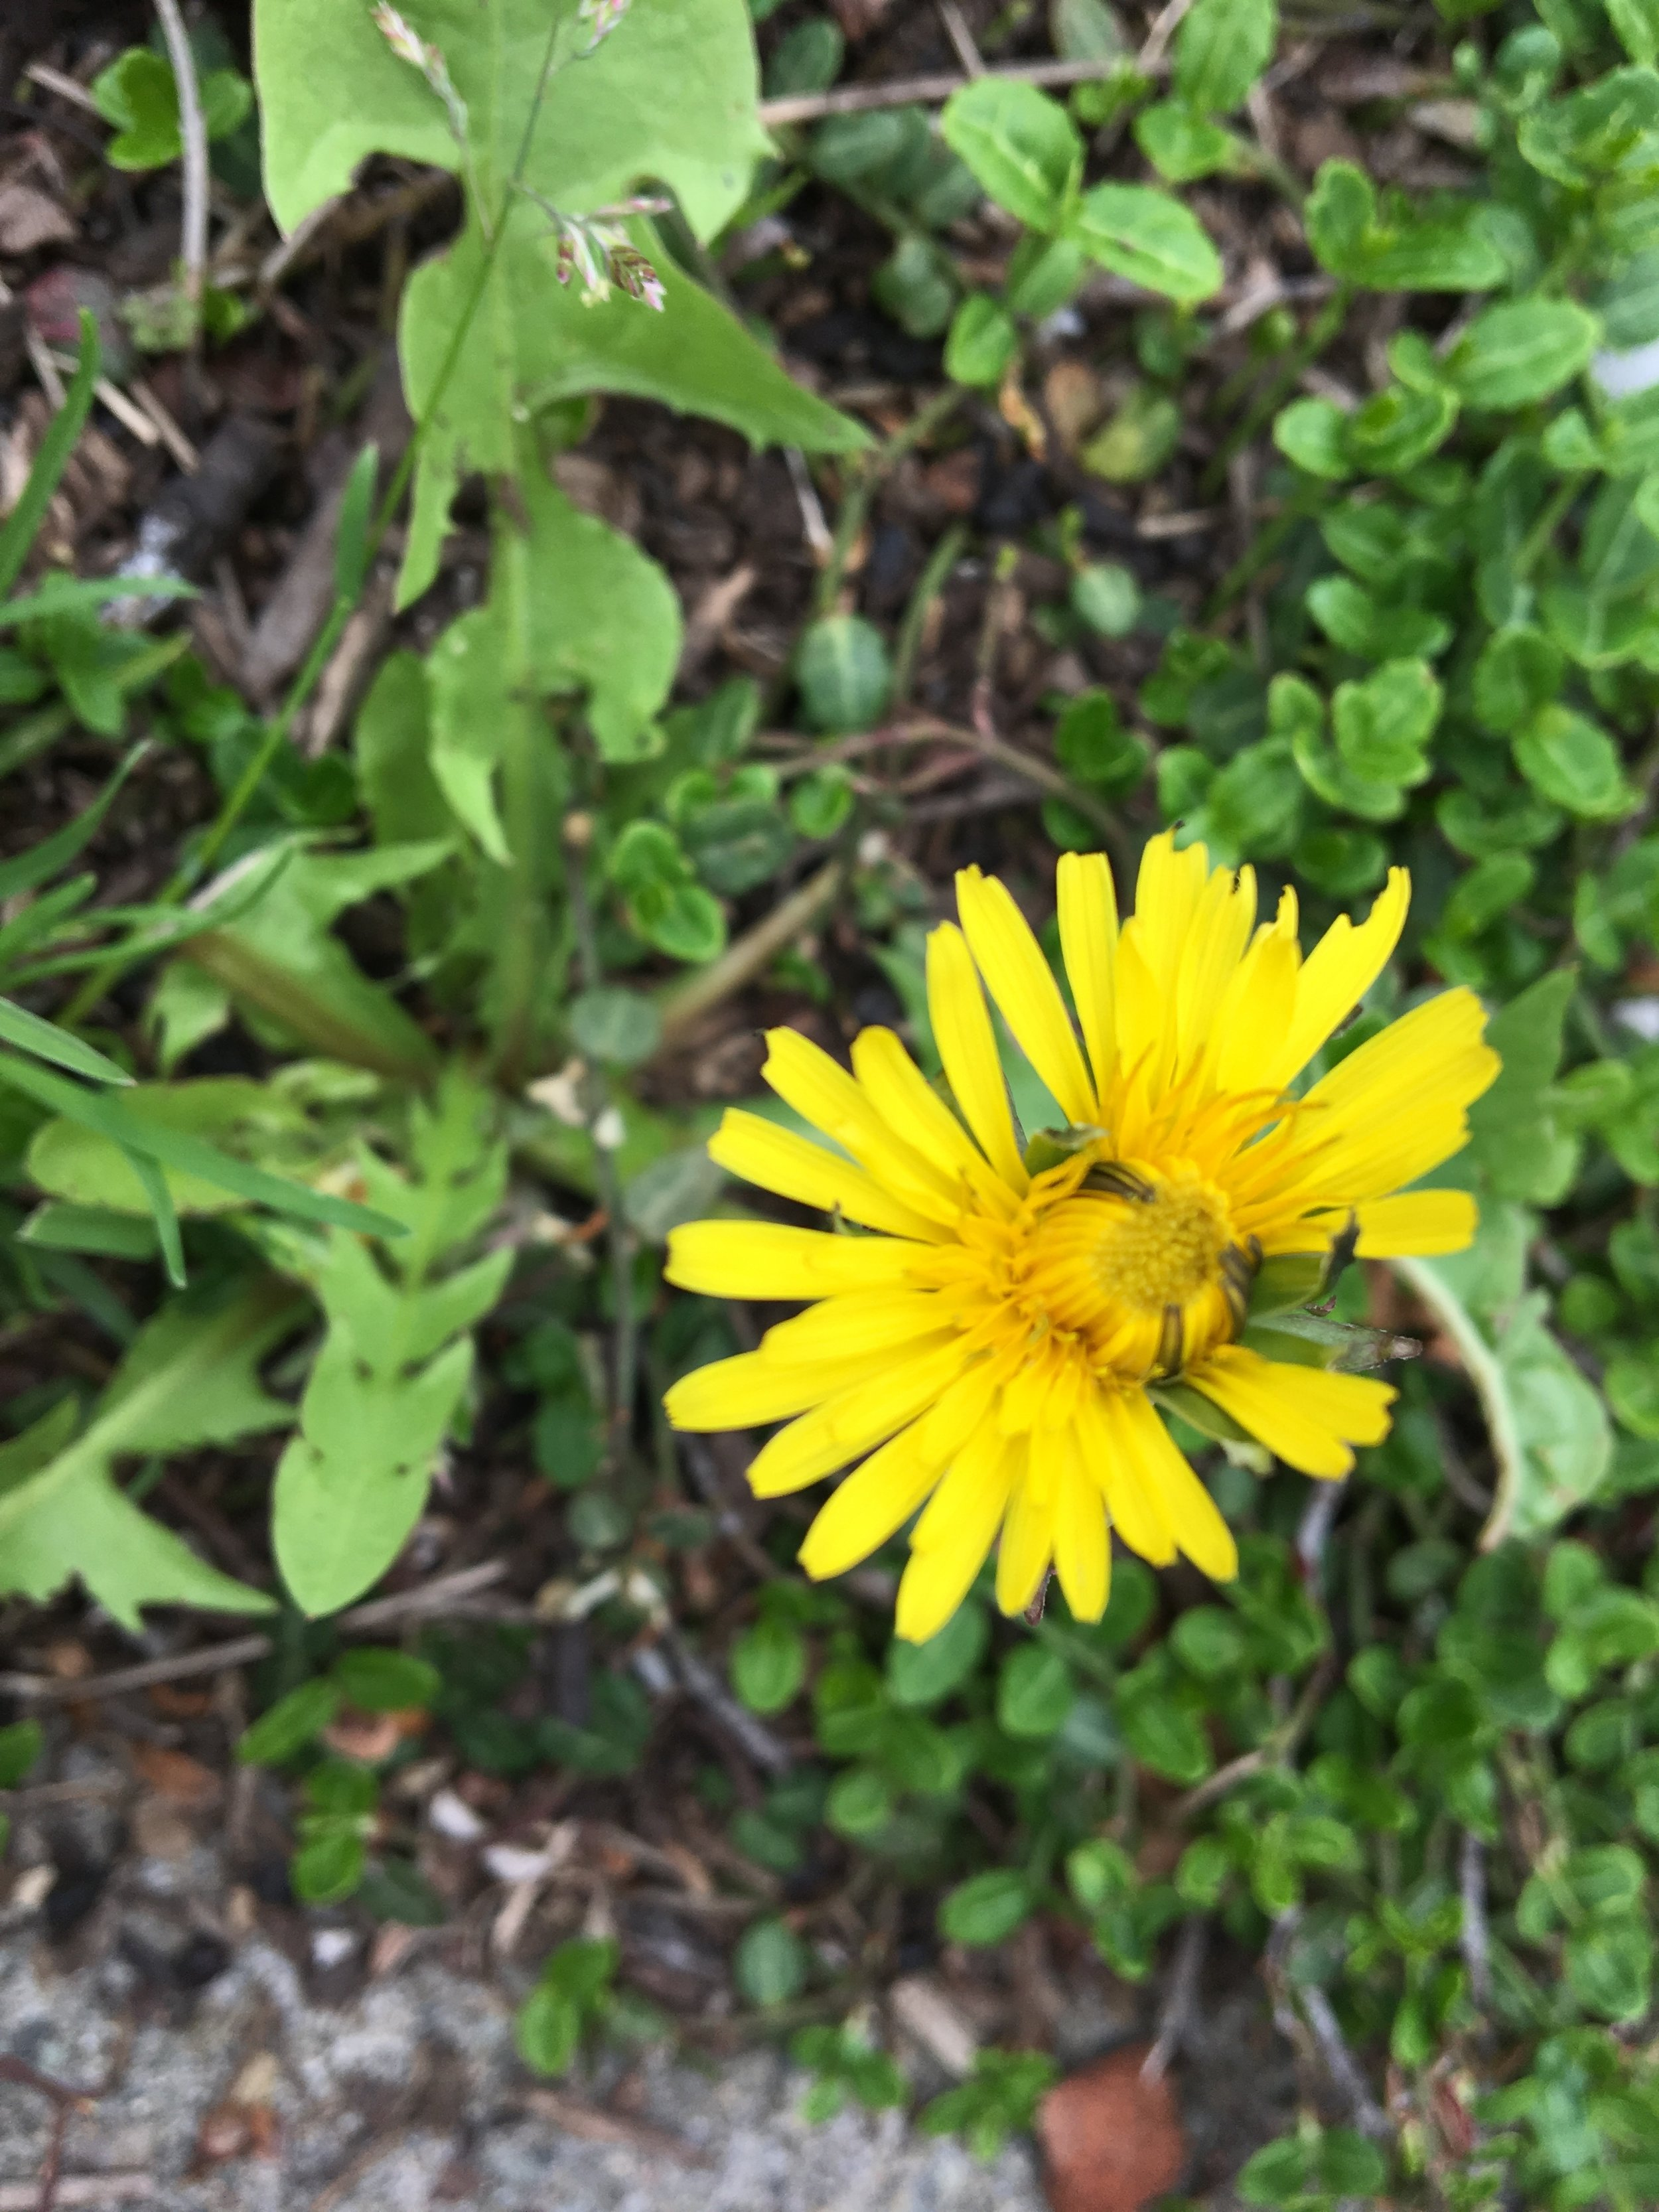 Taraxacum officinalis, DANDELION. Photo courtesy of Mary Fisher.